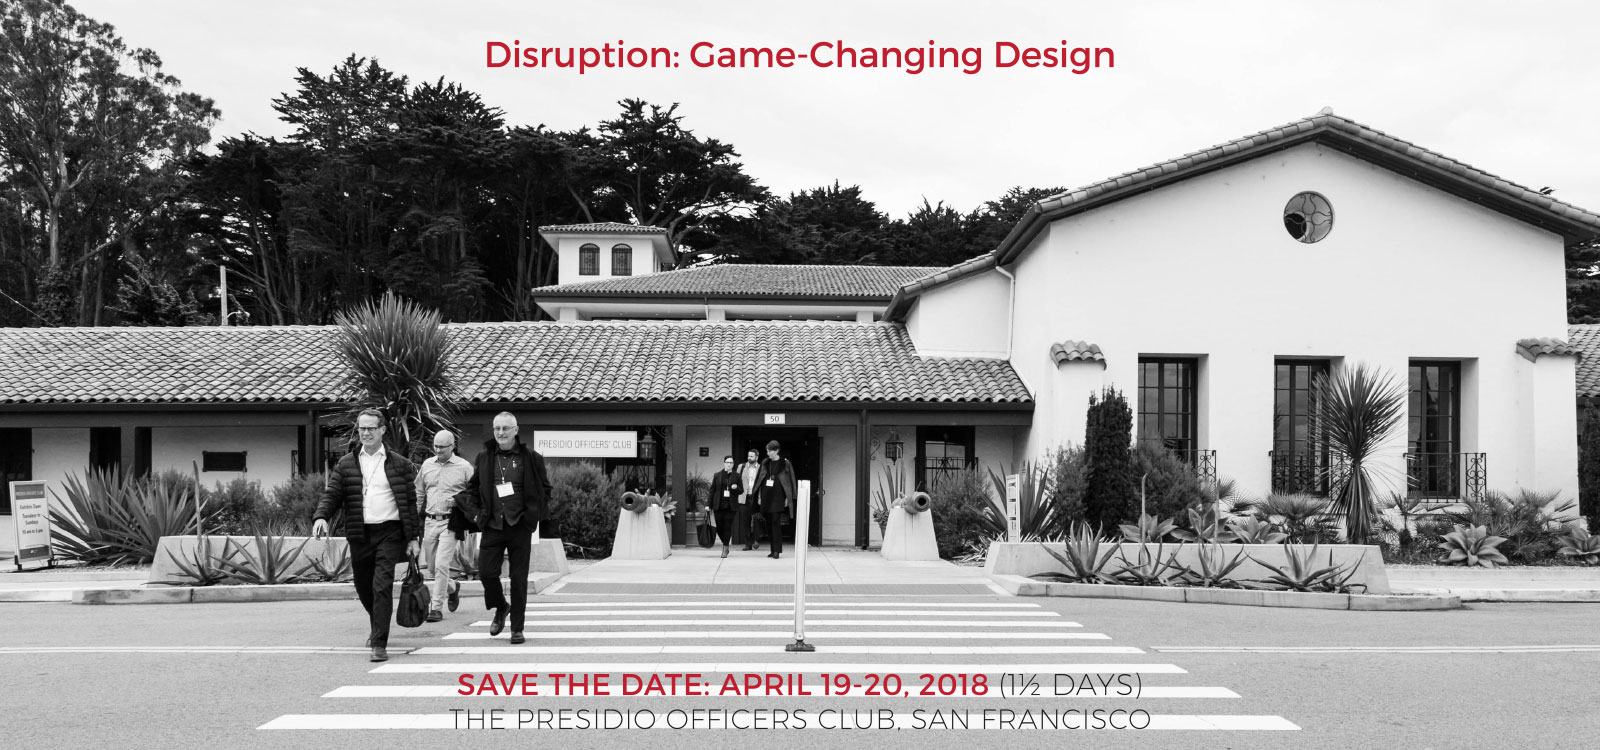 Disruption: Game-Changing Design